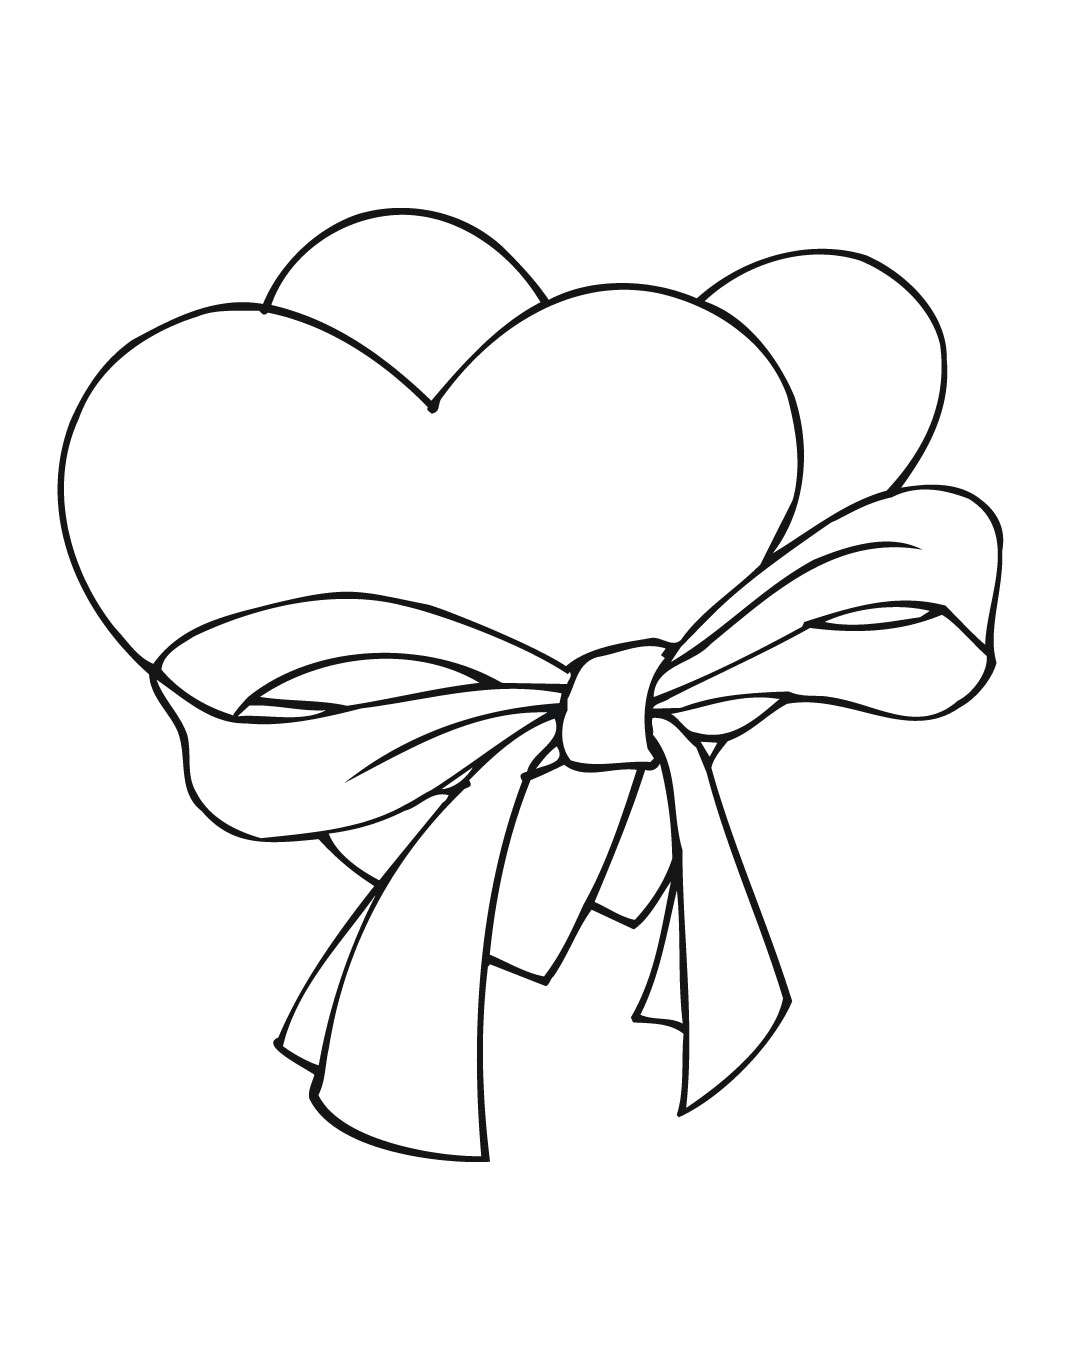 the heart coloring pages - photo #35